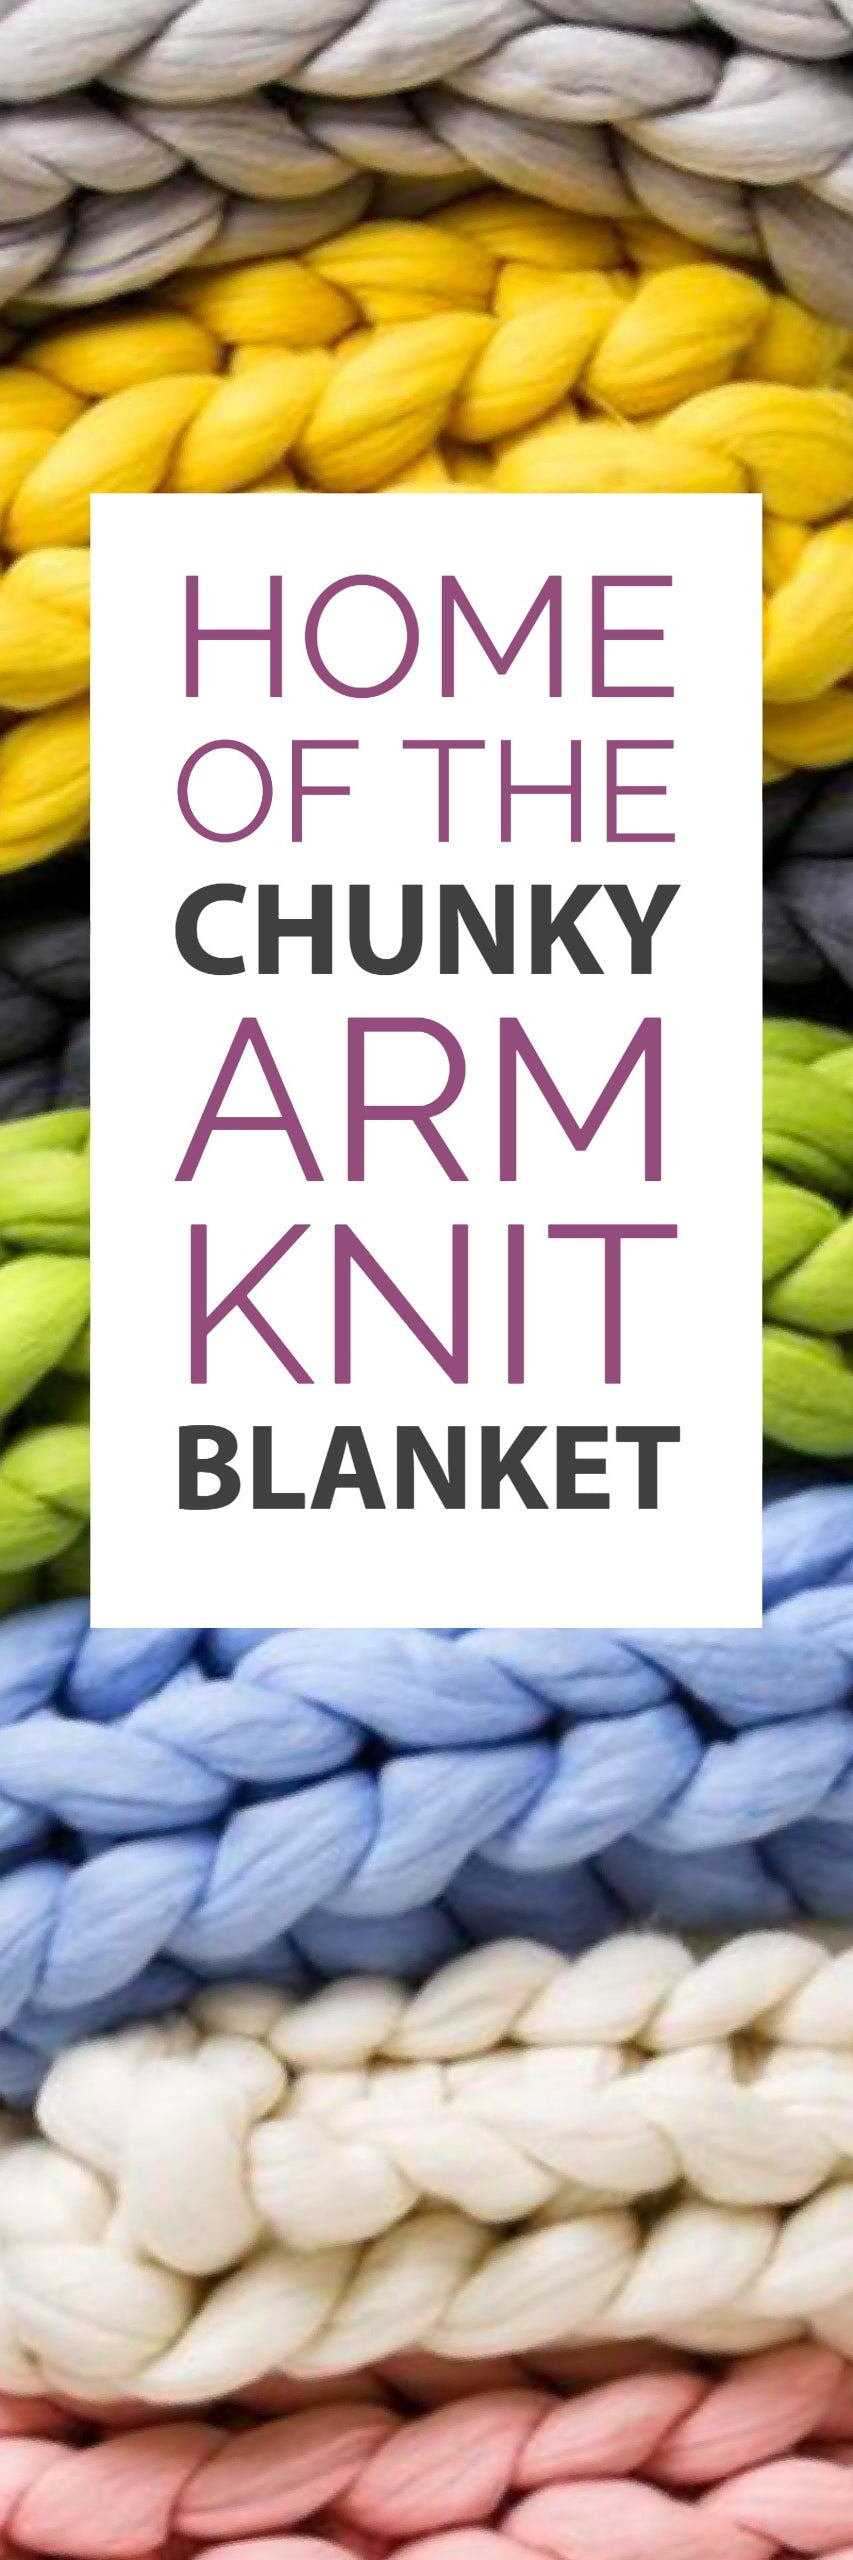 Shop Blanket Kits